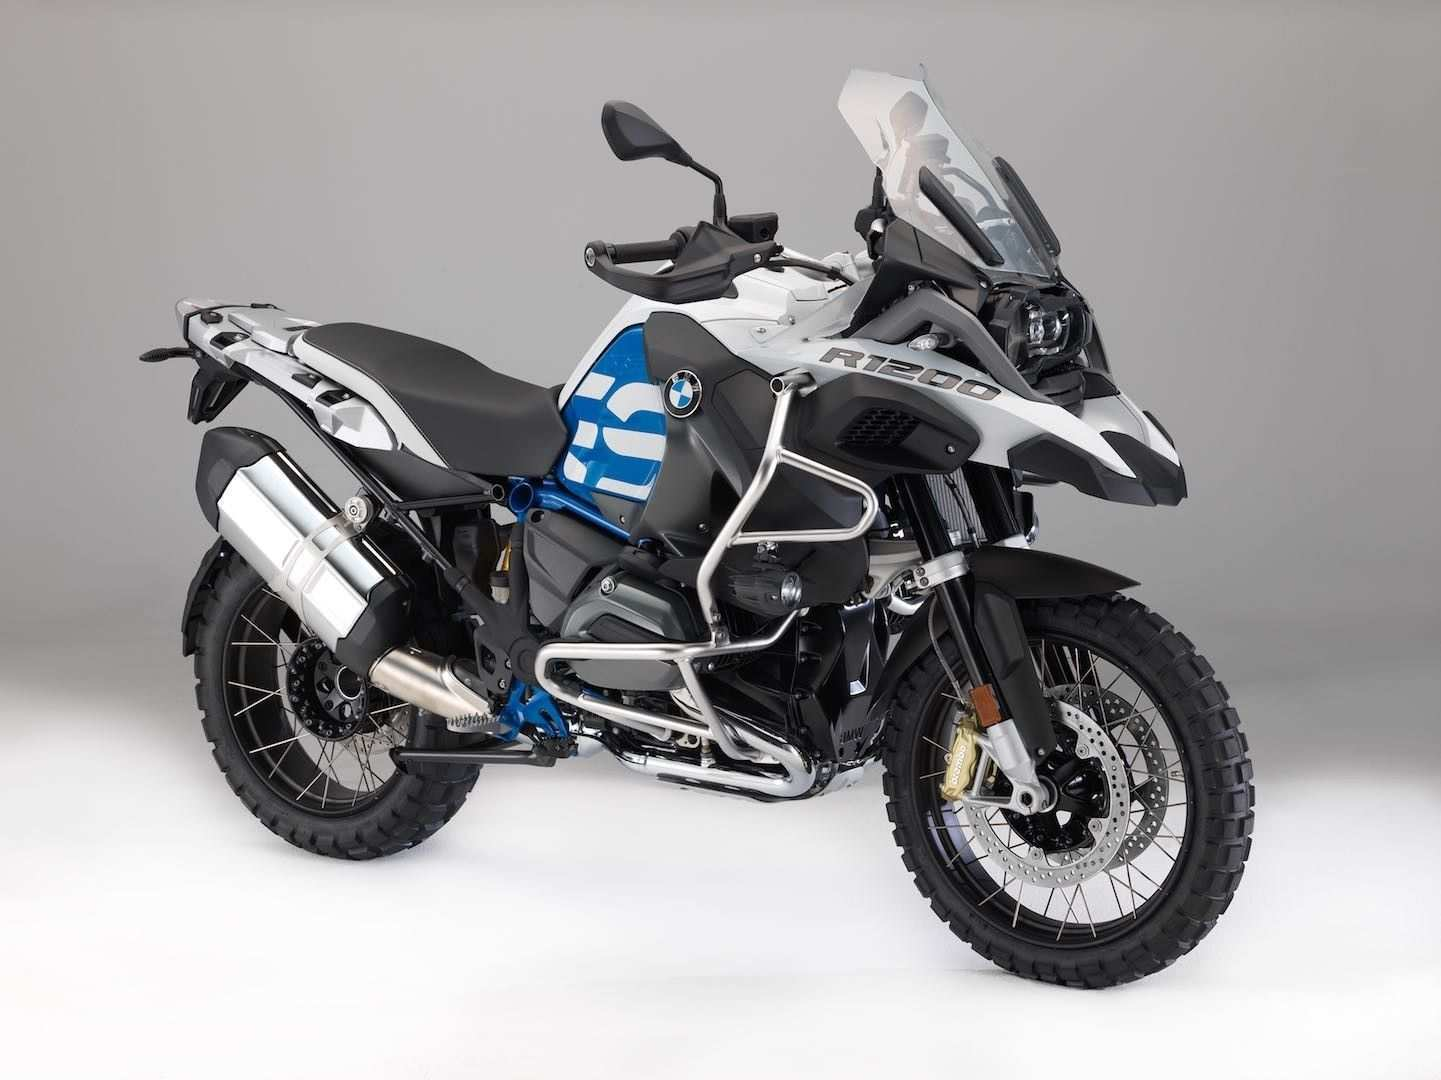 16 Concept of 2019 Bmw Gs Redesign with 2019 Bmw Gs